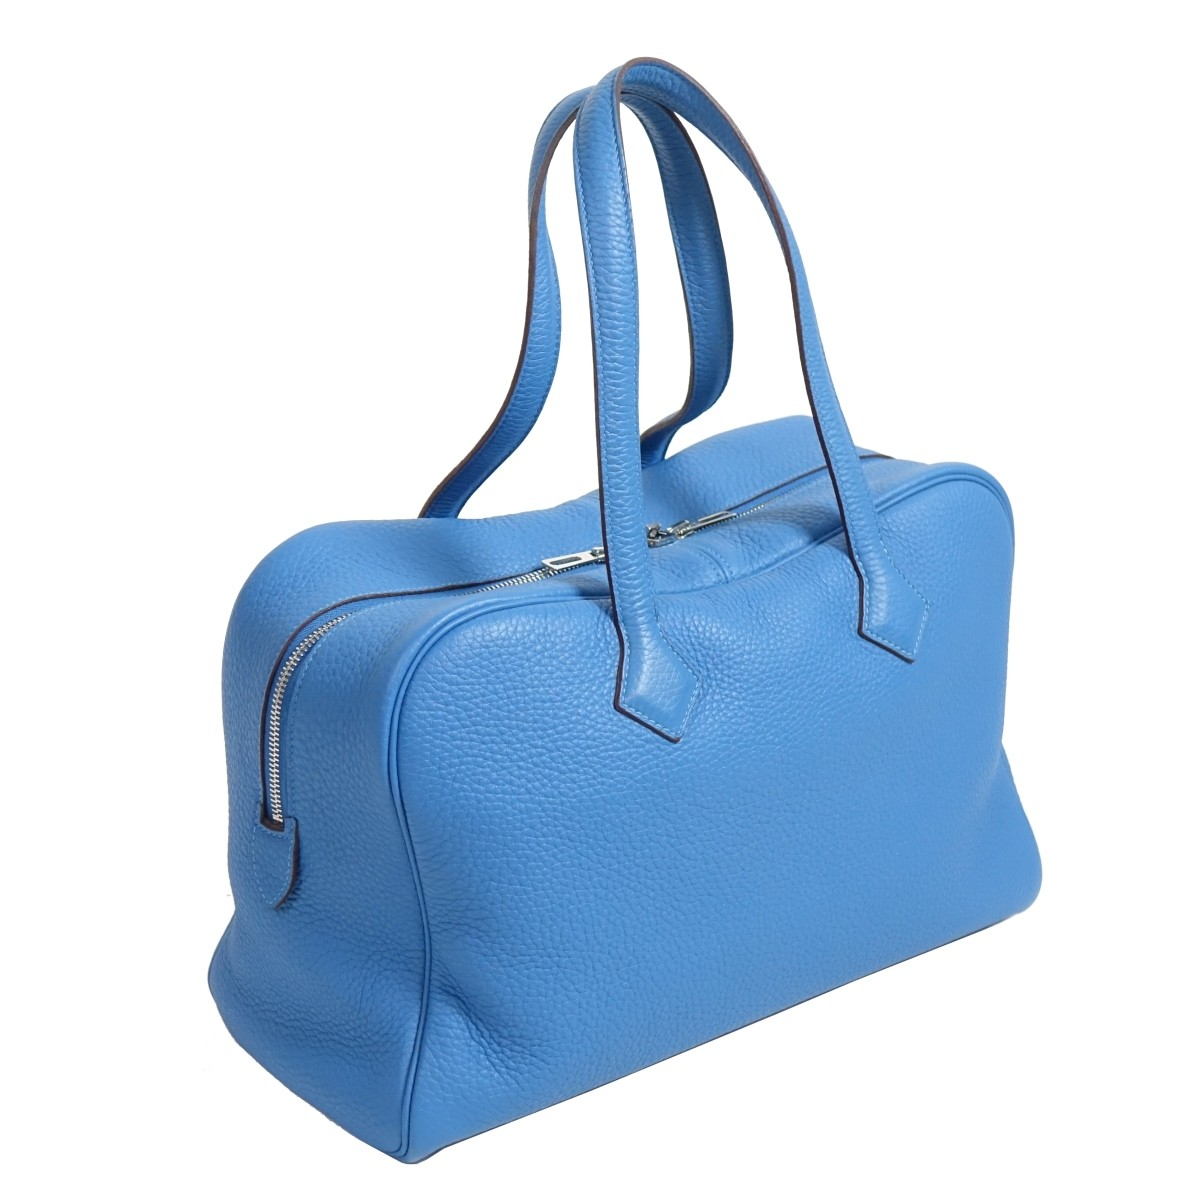 Hermes Blue Jean Leather Victoria II Tote Bag